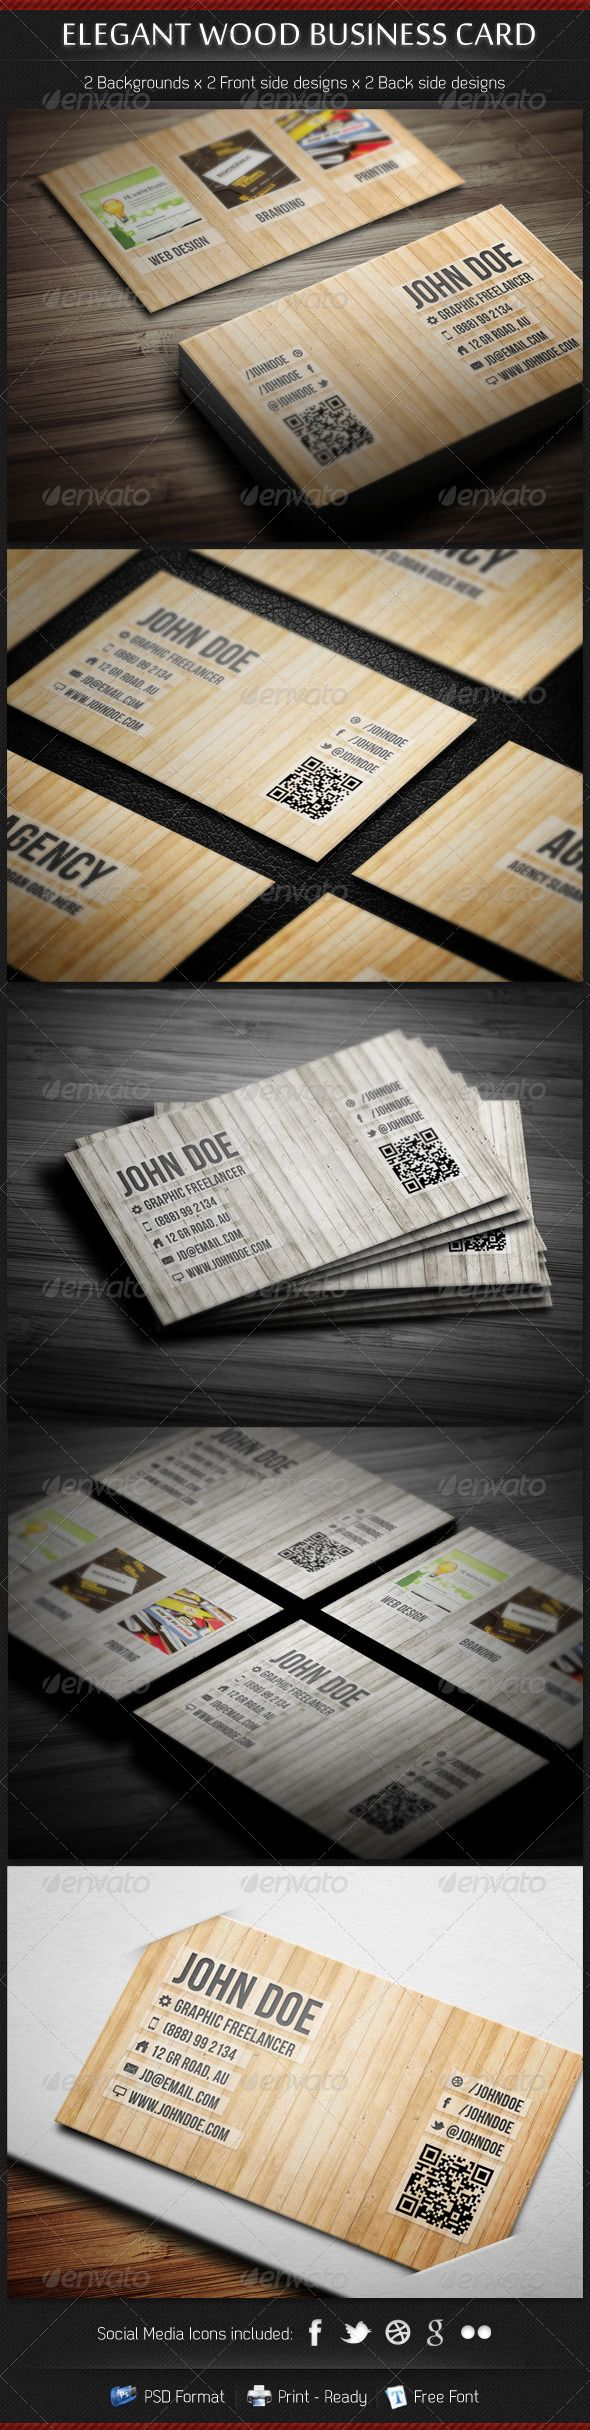 28 best BUSINESS CARDS images on Pinterest | Cleanses, Photography ...